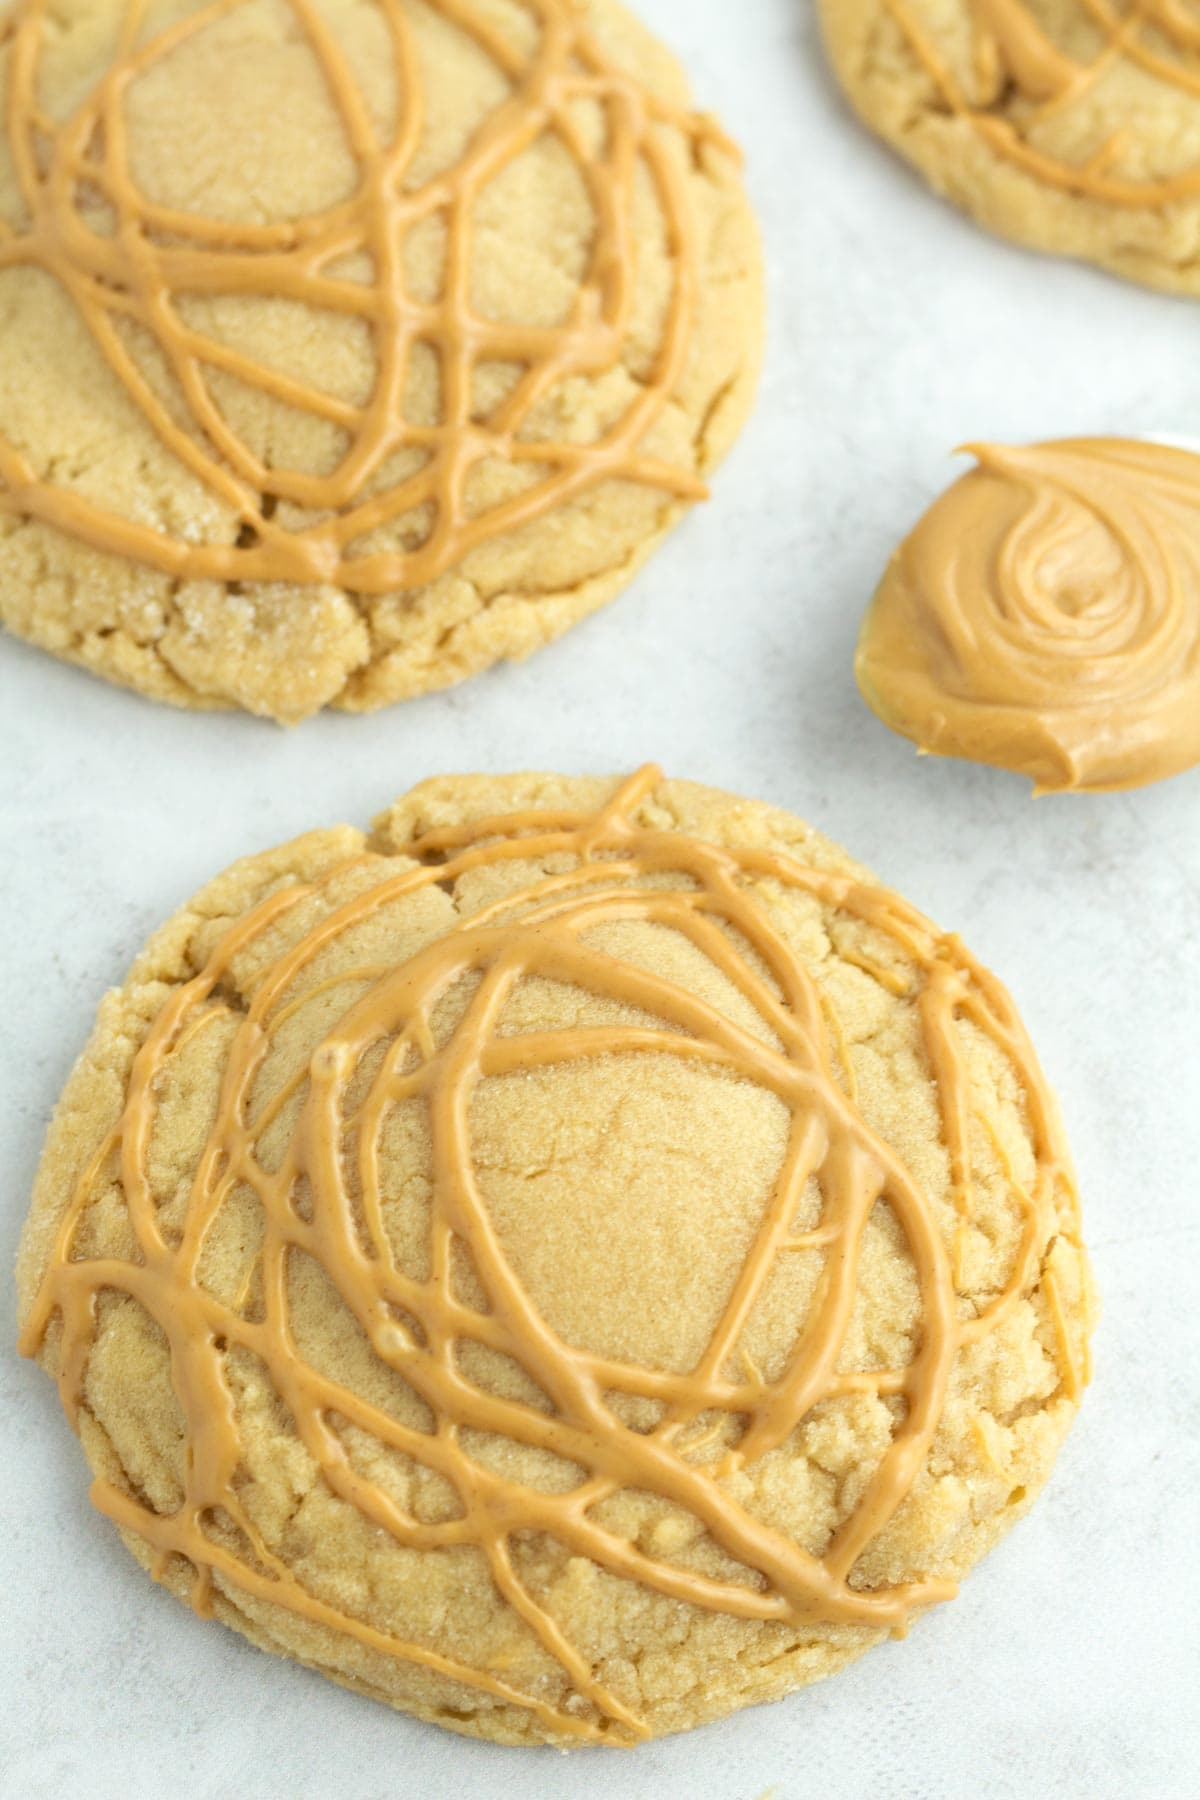 Three cookies drizzled with peanut butter on the counter.